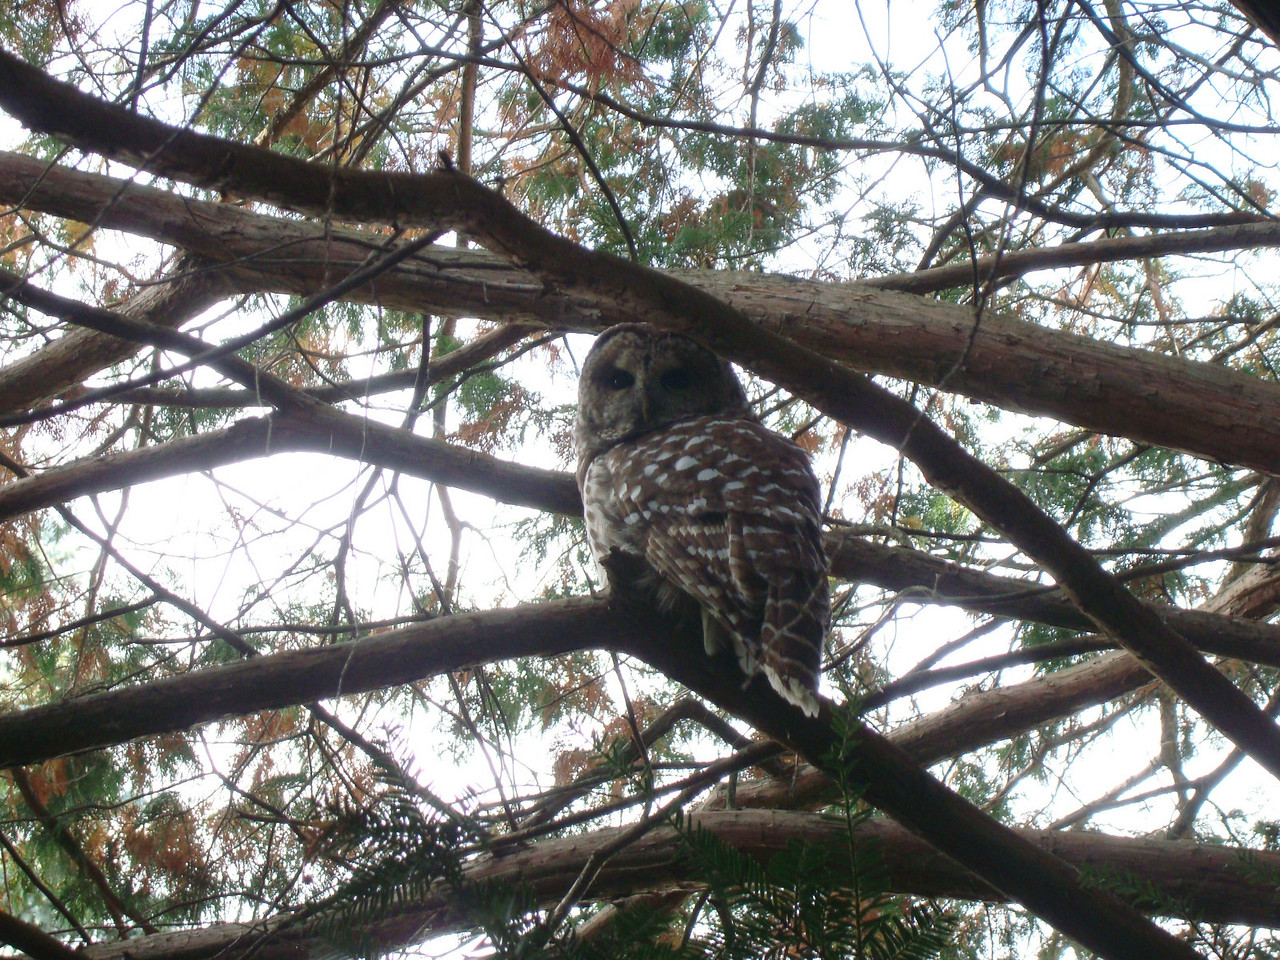 Barred Owl, Prospect Street, Amherst Massachusetts - October 17, 2009